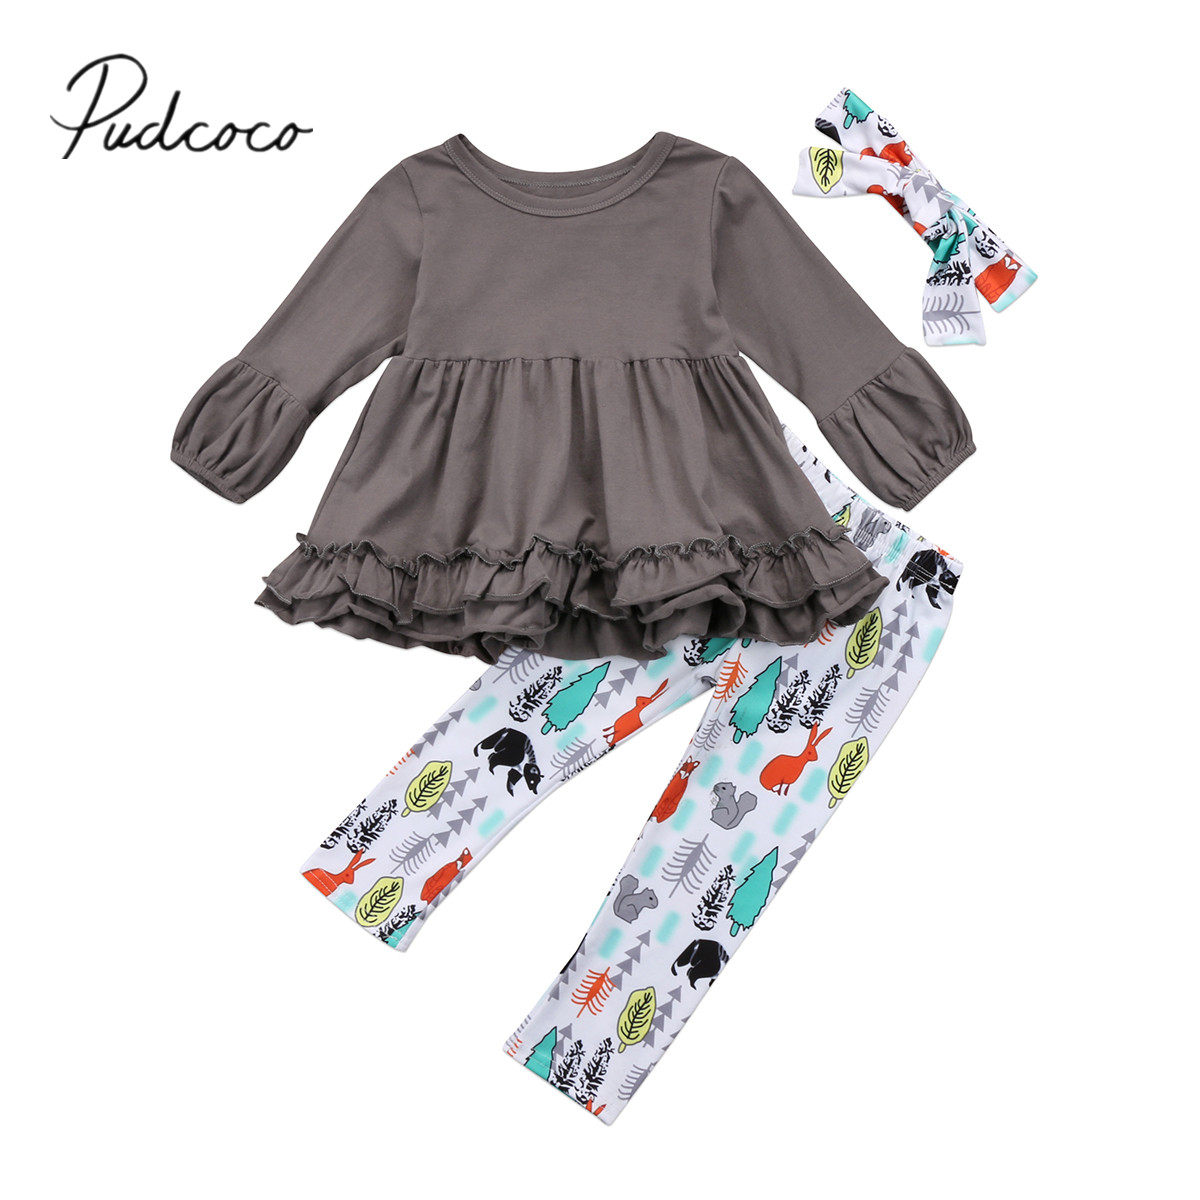 2018 Brand New Tpddler Infant Child Kids Baby Girl Ruffled Top Dress Floral Pants Leggings Headband 3Pcs Outfits Set Kid Clothes